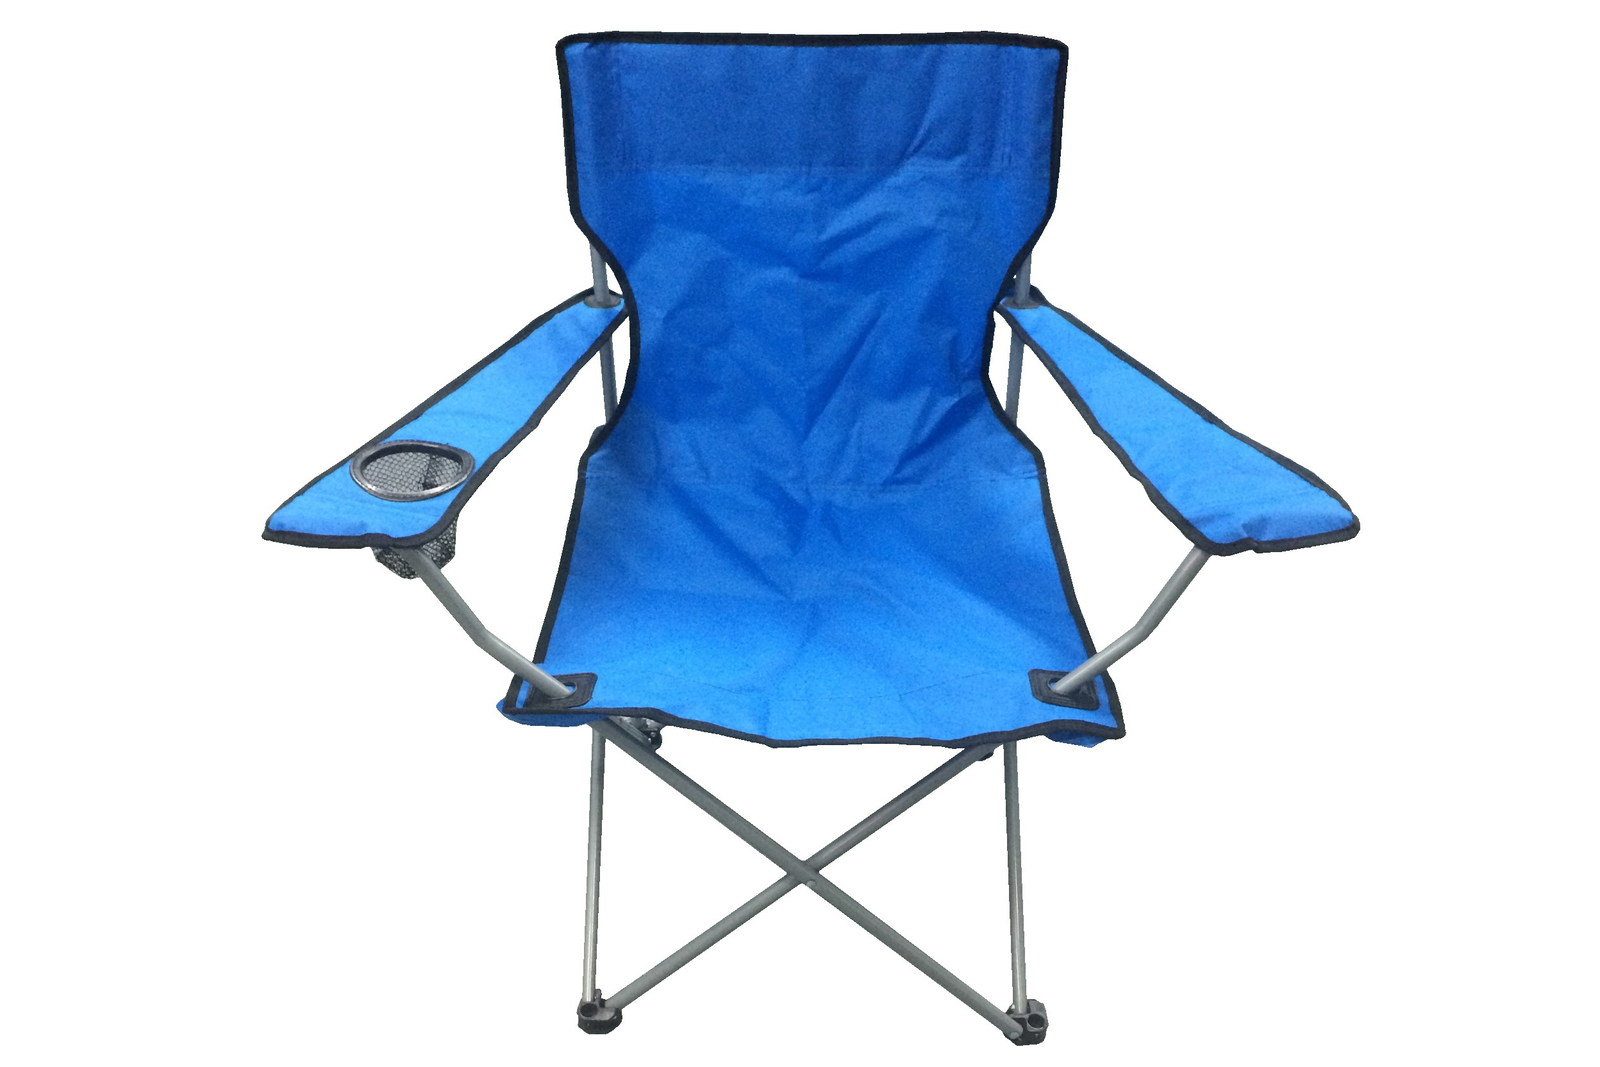 camping chair accessories dining covers etsy with cup holder in blue and black bags